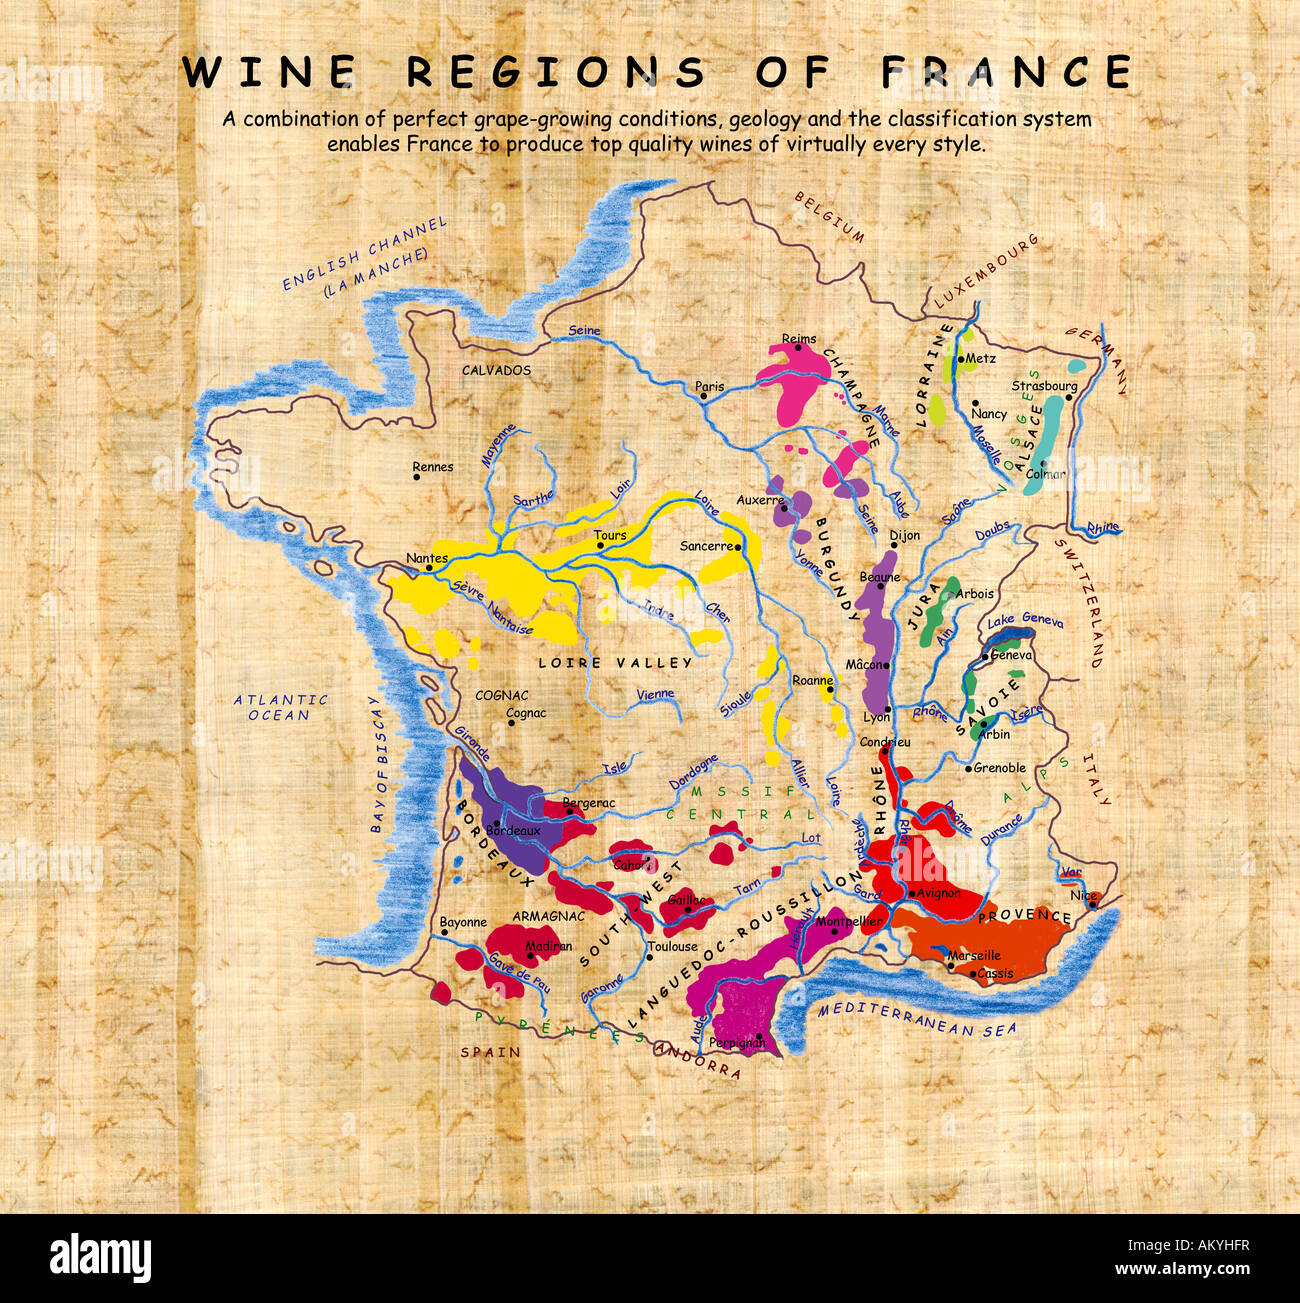 Regions In France Map.Map Of The Wine Regions Of France Stock Photo 15099466 Alamy